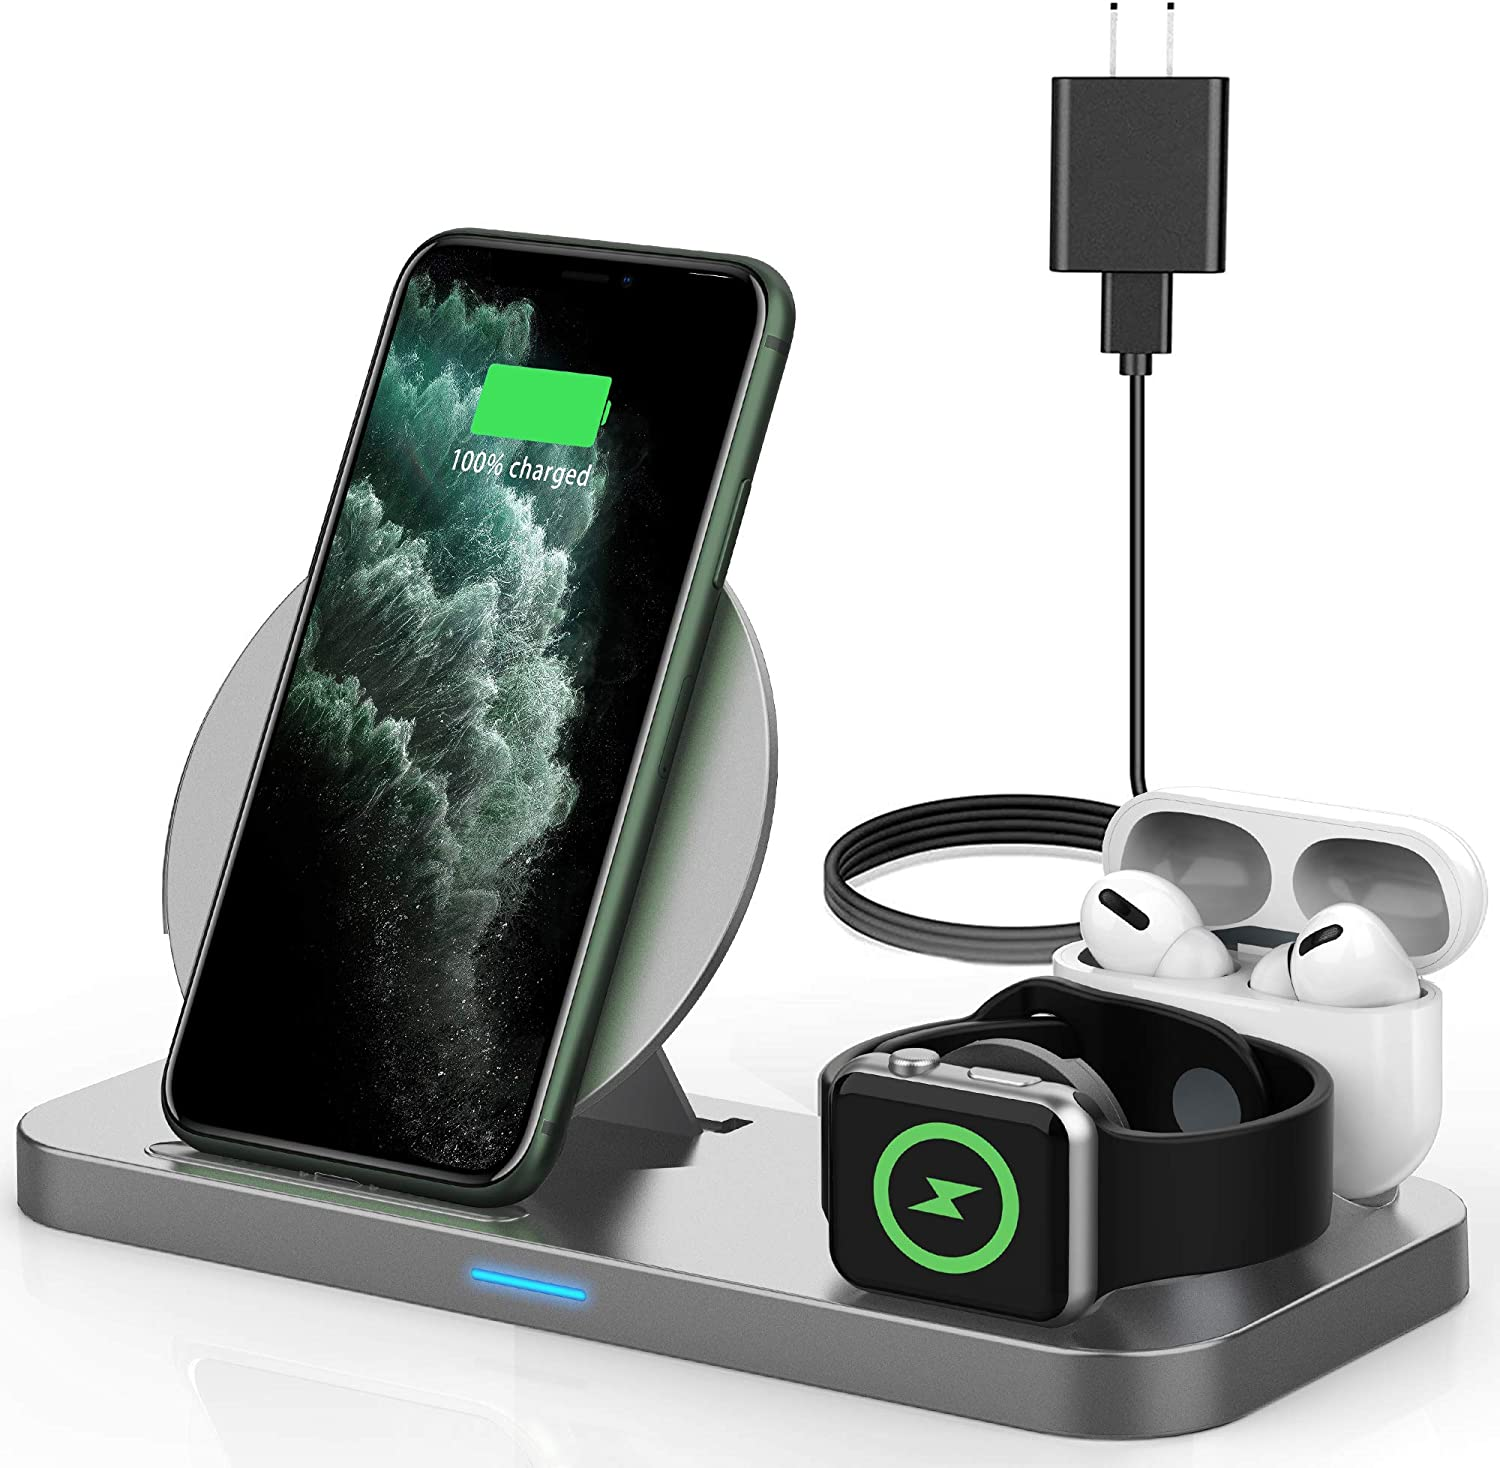 Powlaken 3 in 1 Wireless Charger, Wireless Charging Station Compatible for Apple iWatch Series SE 6 5 4 3 2 1, AirPods Pro 2, Wireless Charging Stand Dock for iPhone 11, 11 Pro Max, XR, XS, X (Grey)